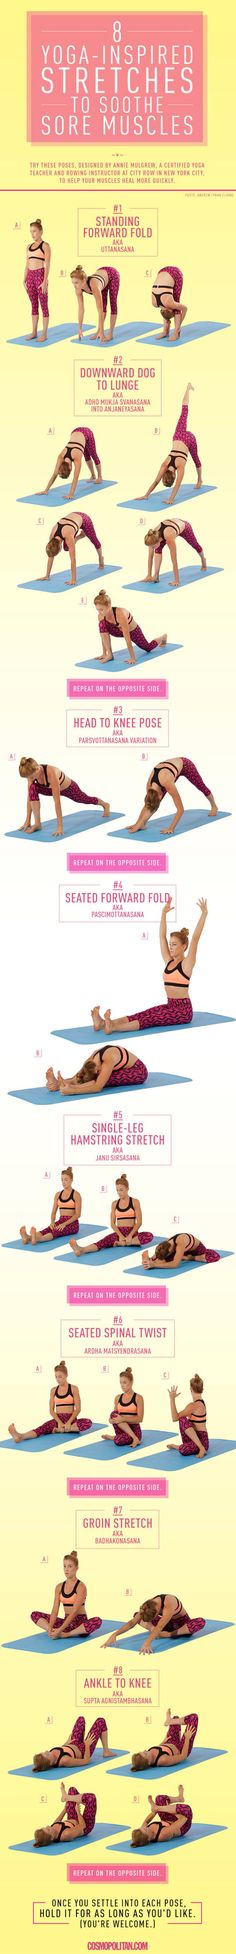 Stretches for Sore Muscles - Yoga-Inspired Stretches